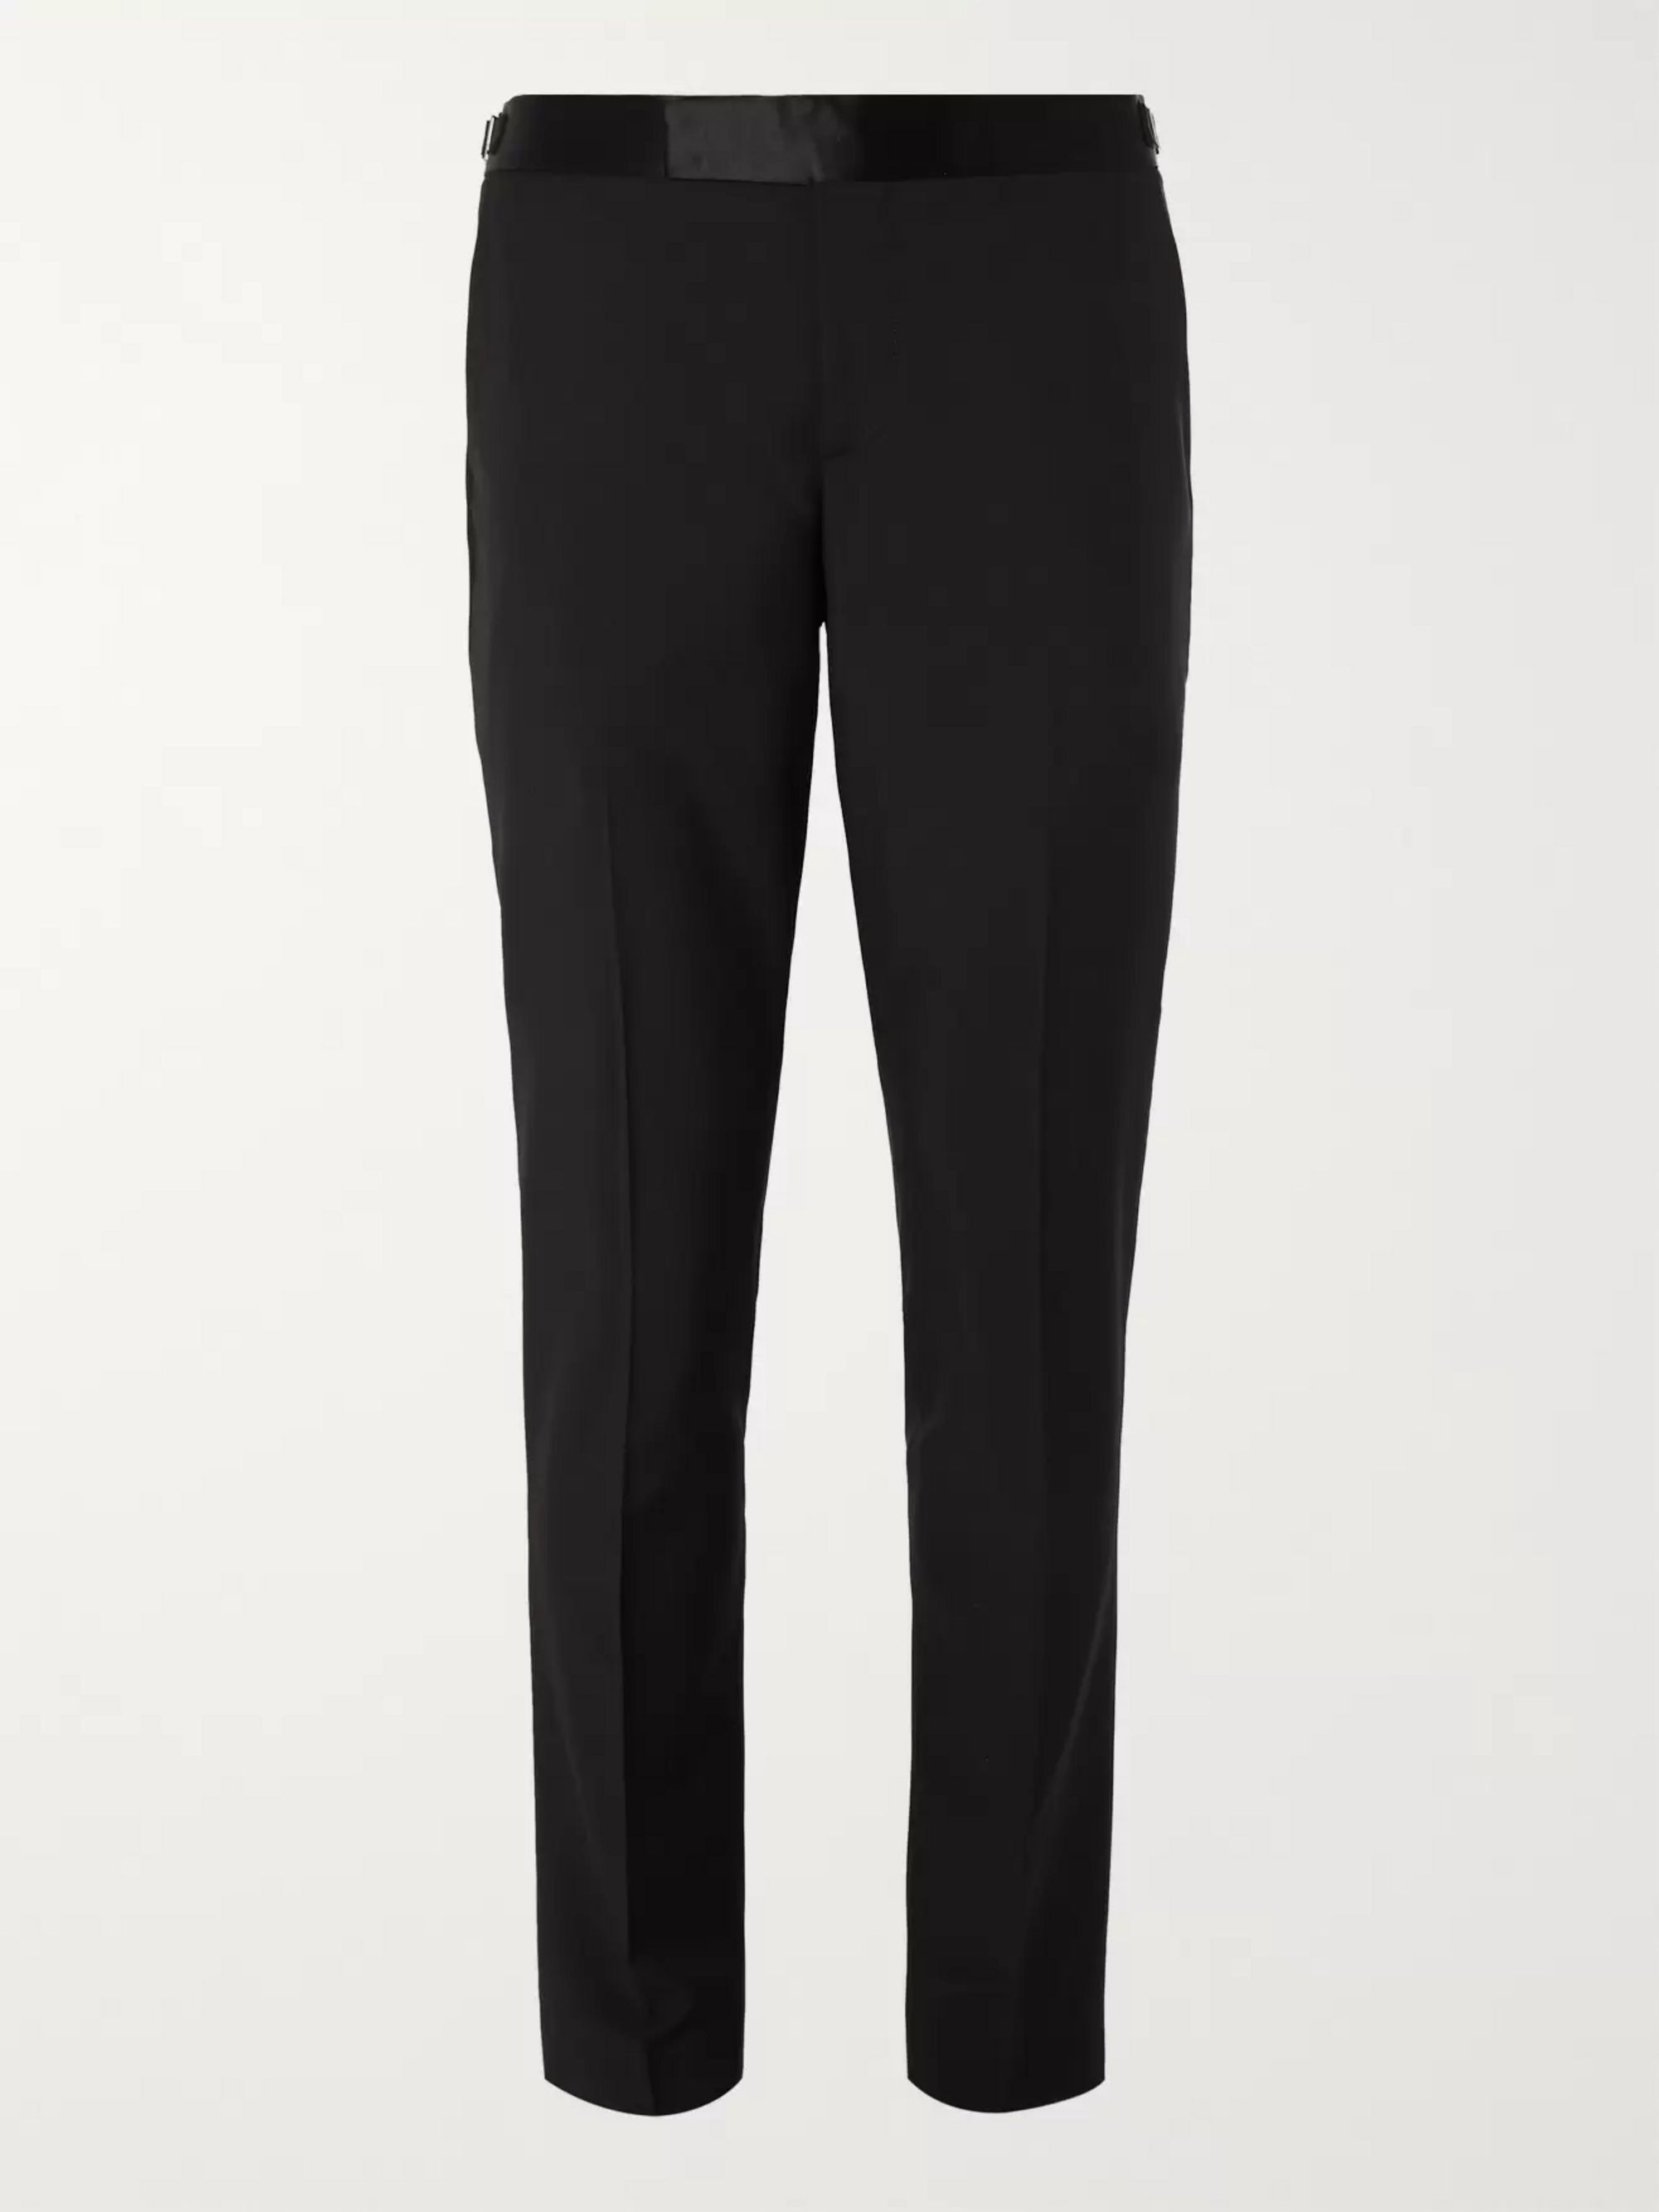 Paul Smith Black Soho Slim-Fit Satin-Trimmed Wool and Mohair-Blend Suit Trousers